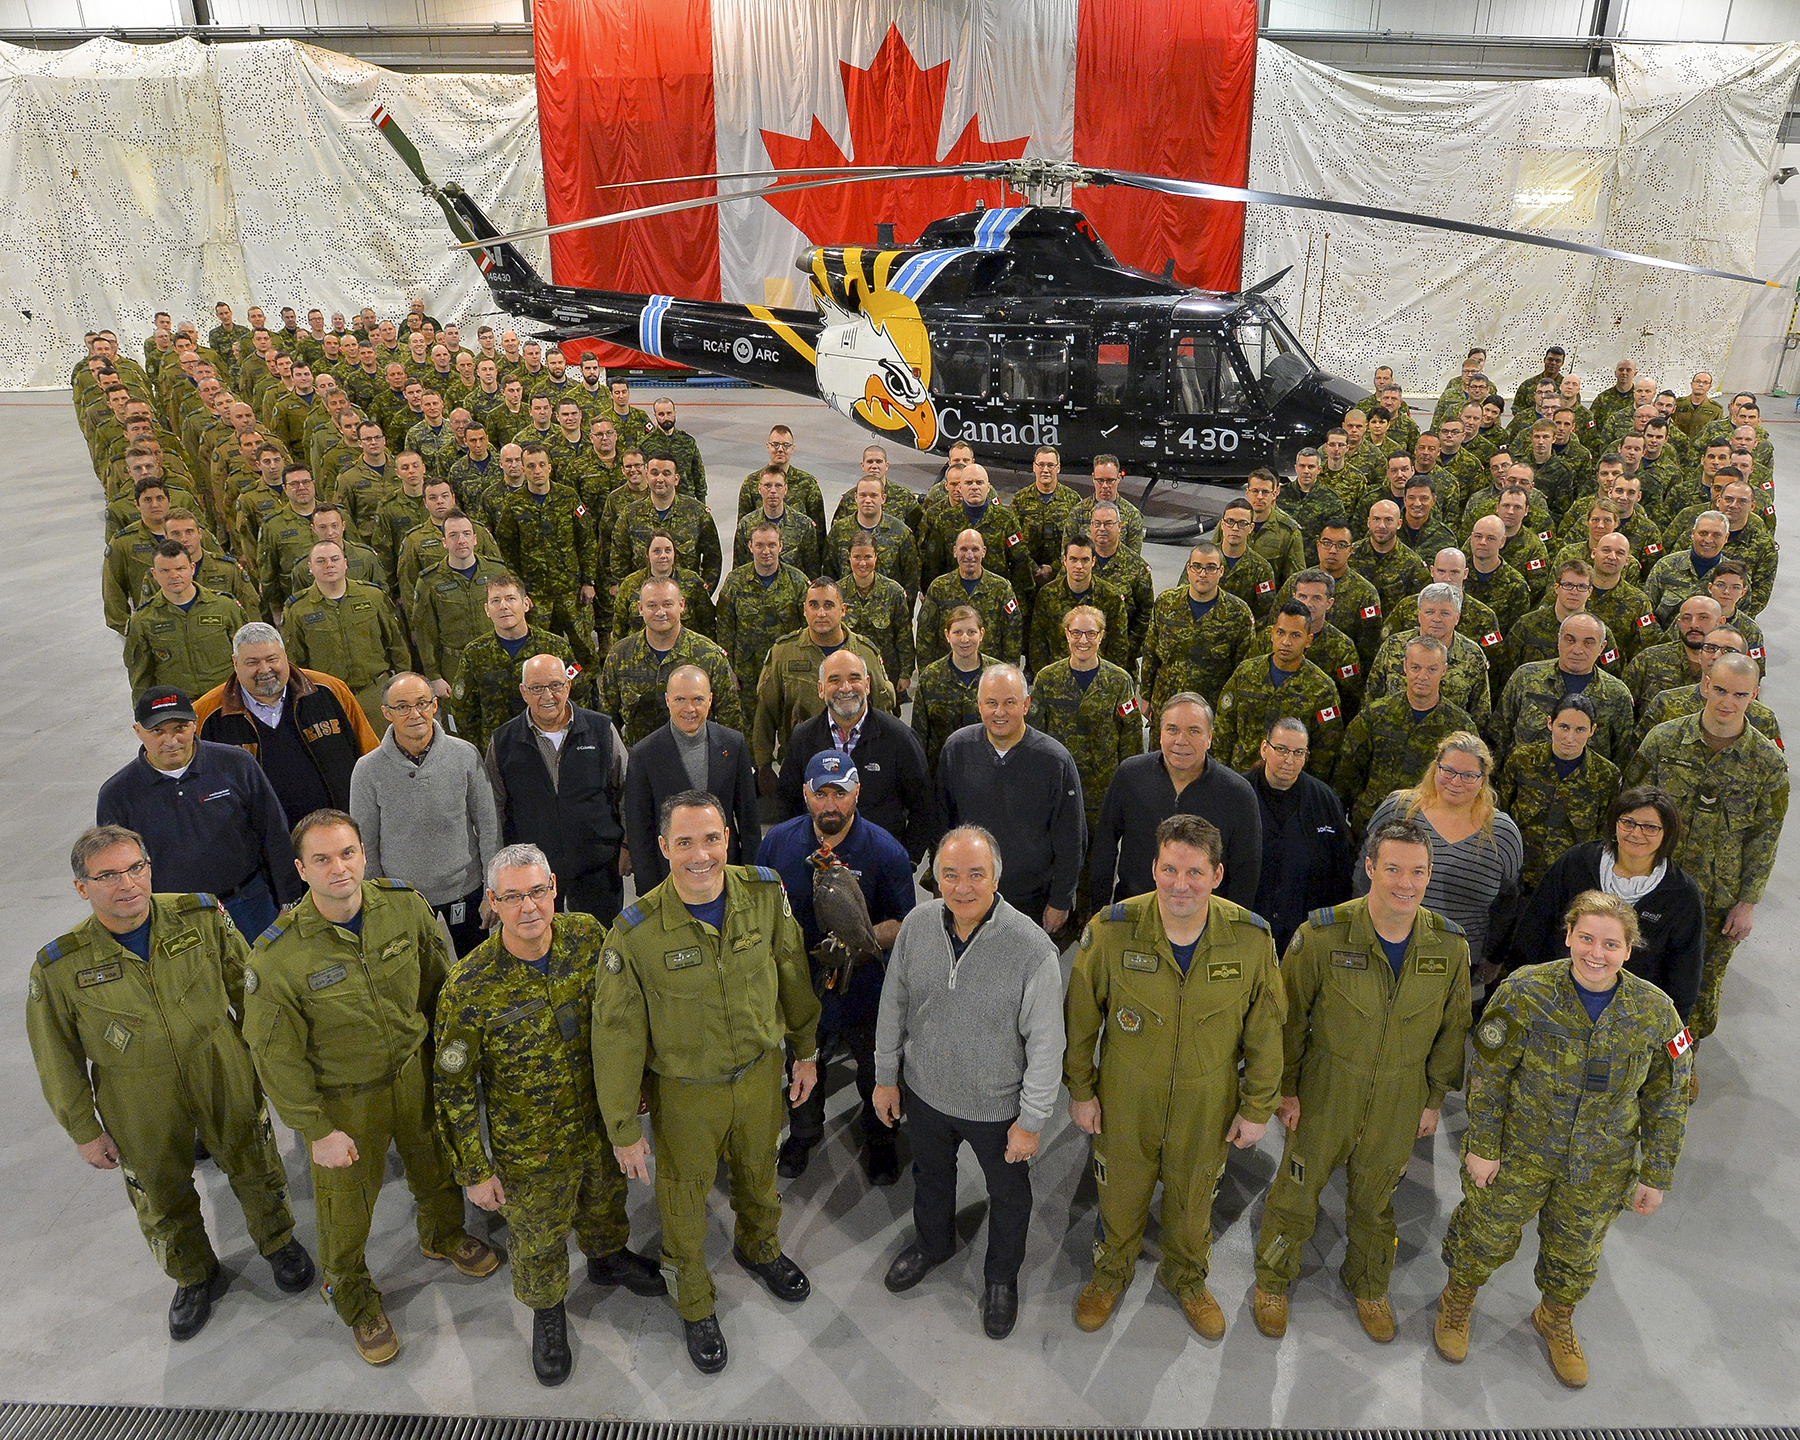 The full complement of 430 Squadron personnel—aircrew, groundcrew, maintainers, civilian staff, gyrfalcon and others—gather for a squadron 75th anniversary portrait in front of a CH-146 Griffon helicopter emblazoned with a gyrfalcon head, which also appears on the 430 badge. PHOTO: DND, VH2018-001-002